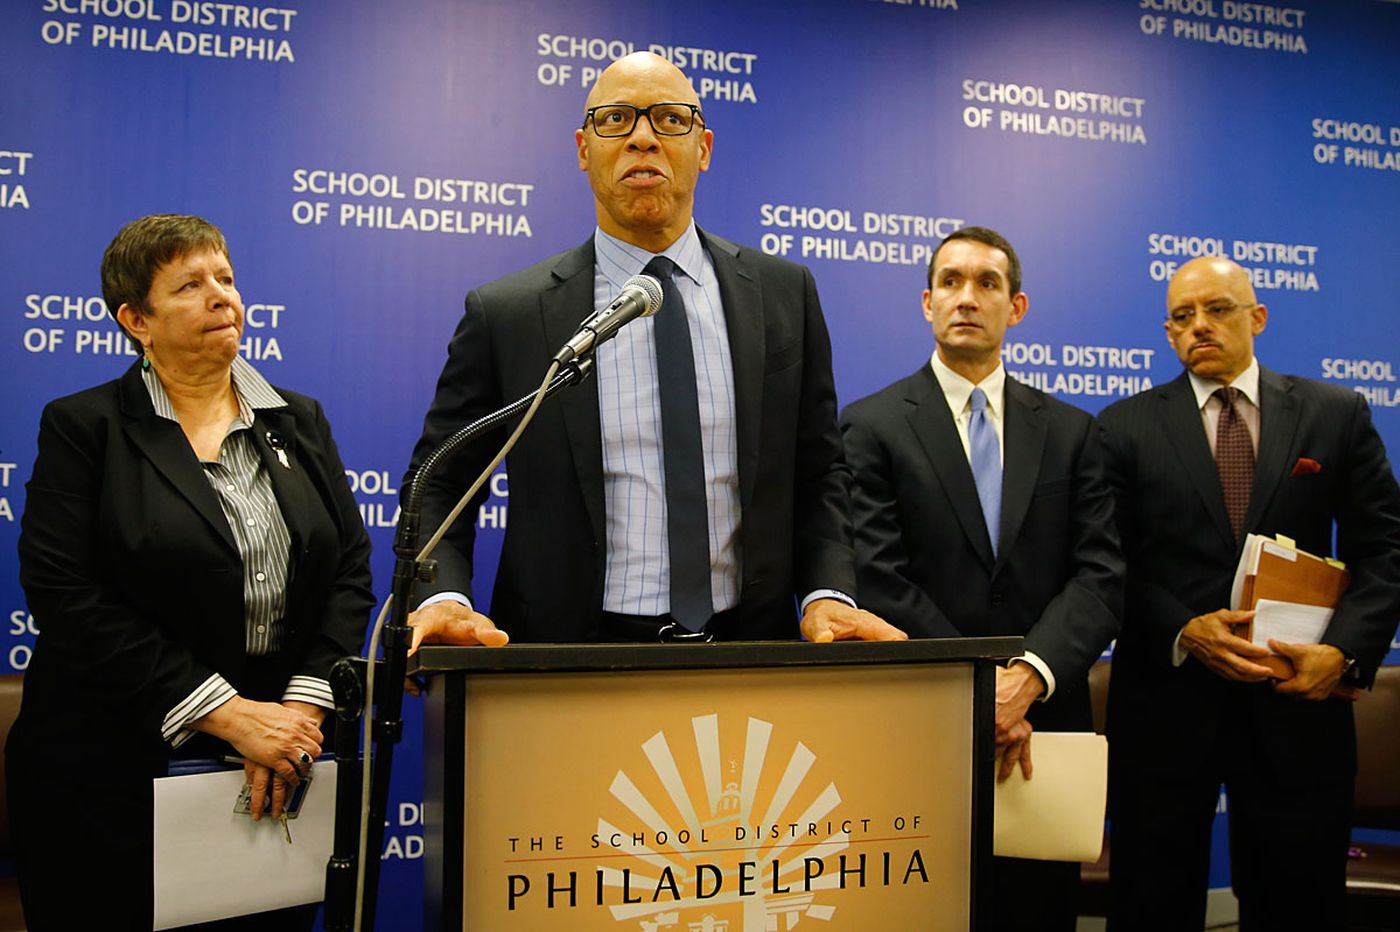 Auditor general: City charter schools need more oversight